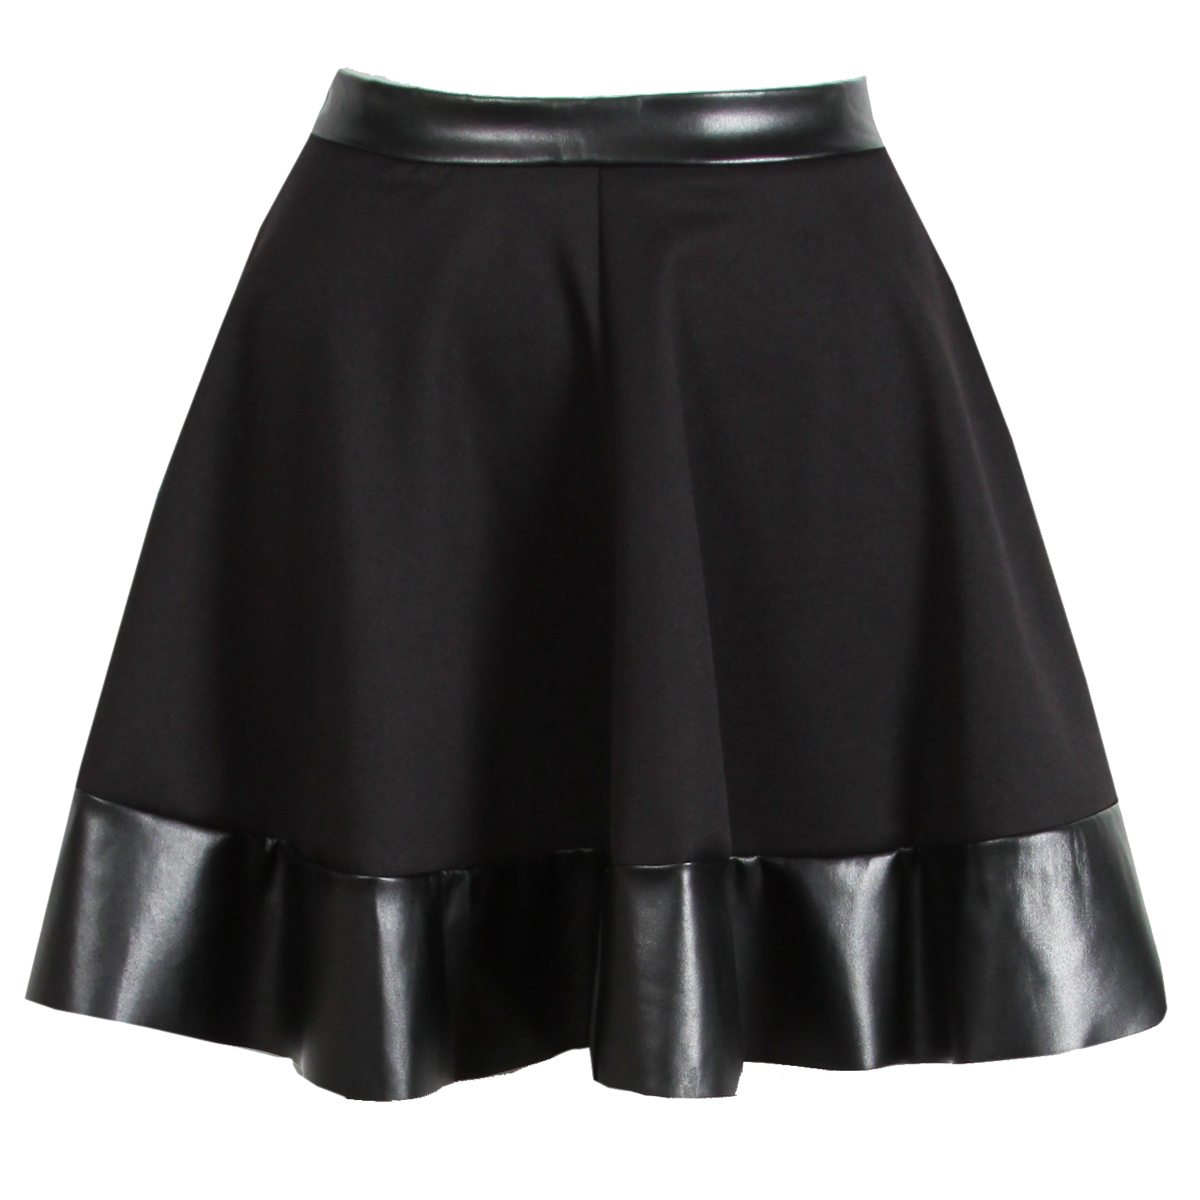 NEW WOMENS BLACK PU LEATHER TRIM SKATER SKIRT MINI PARTY HIGH WAISTED BOX Preview